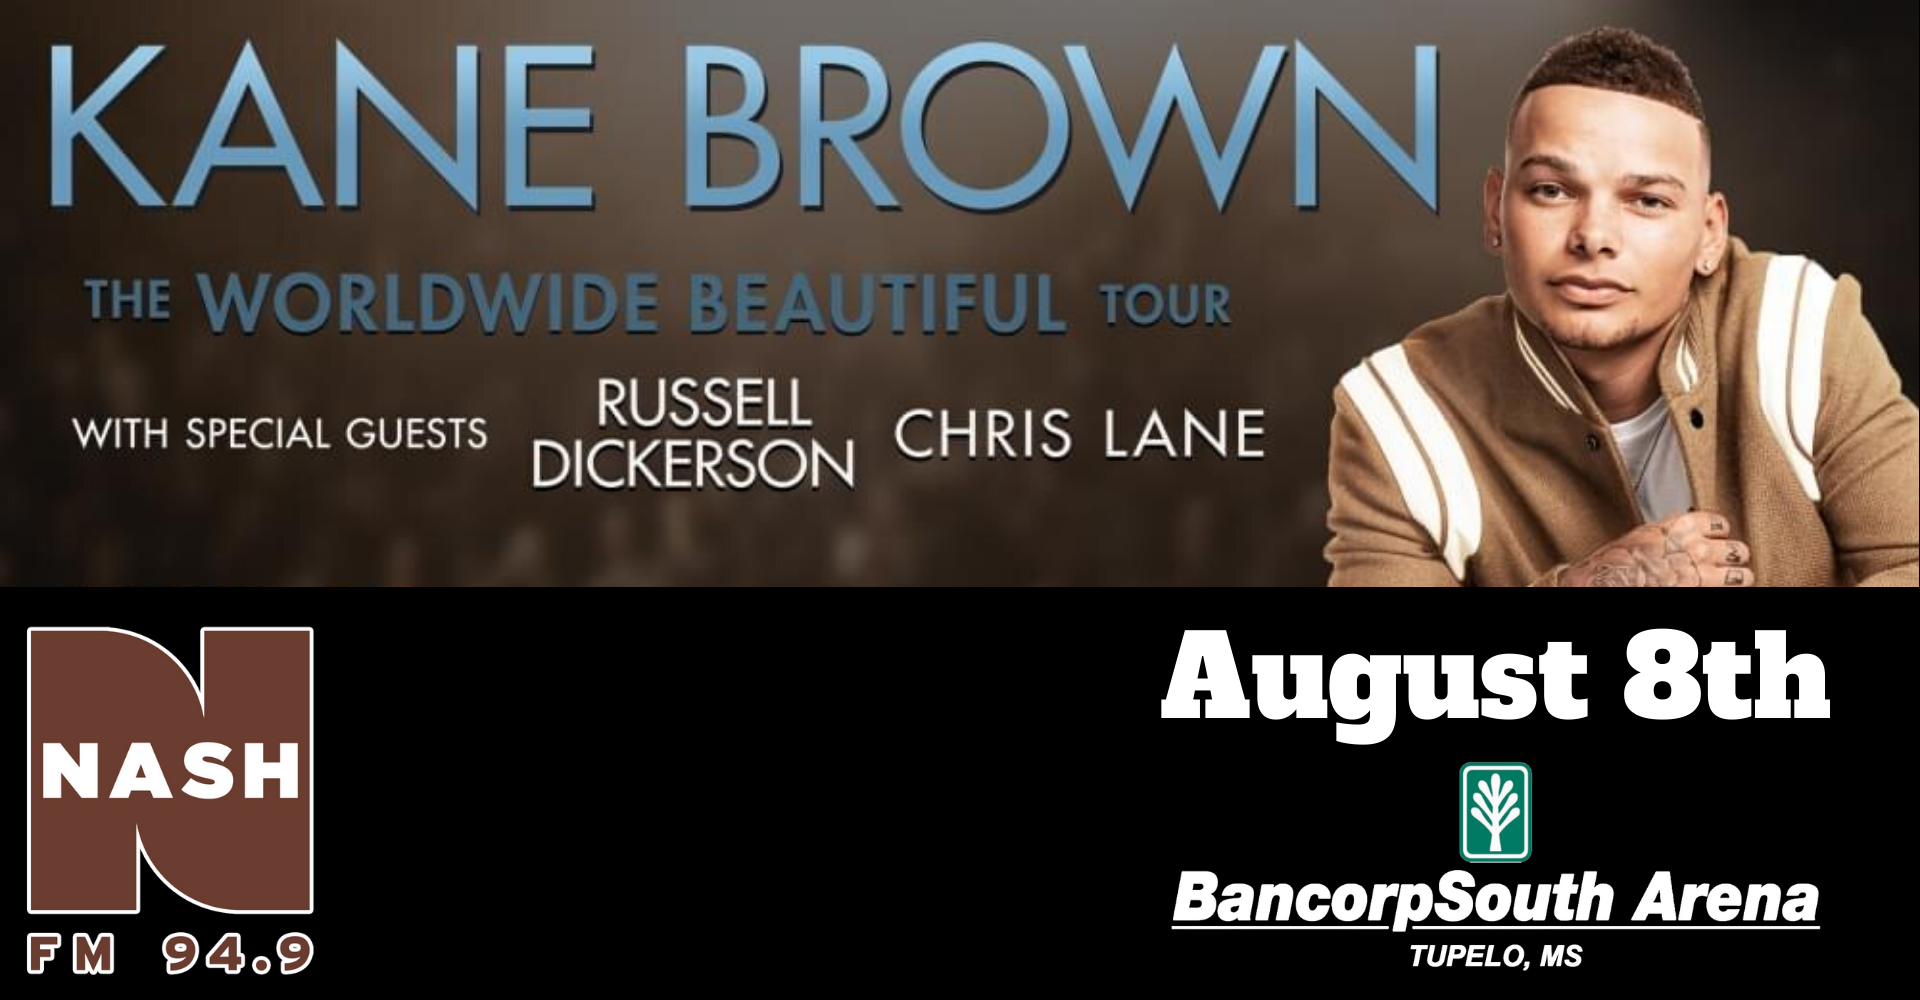 Kane Brown at the BancorpSouth Arena- August 8th